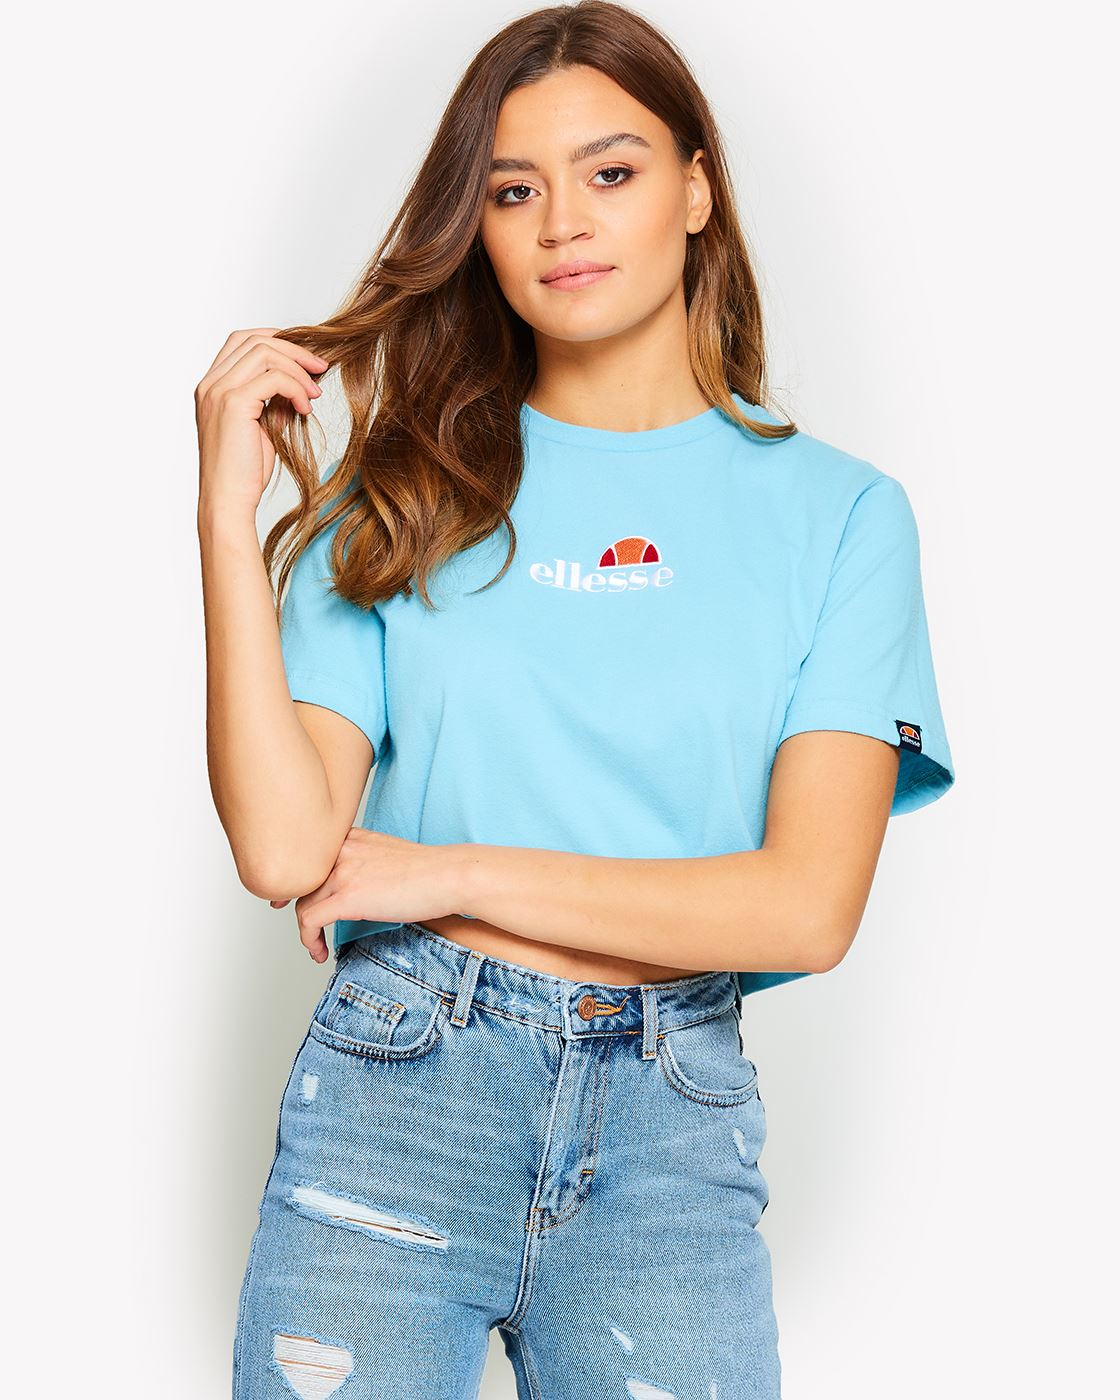 Ellesse-End-of-Line-Clearance-Sale-Bargain-Womens-Tops-T-Shirts-Free-UK-Ship thumbnail 20